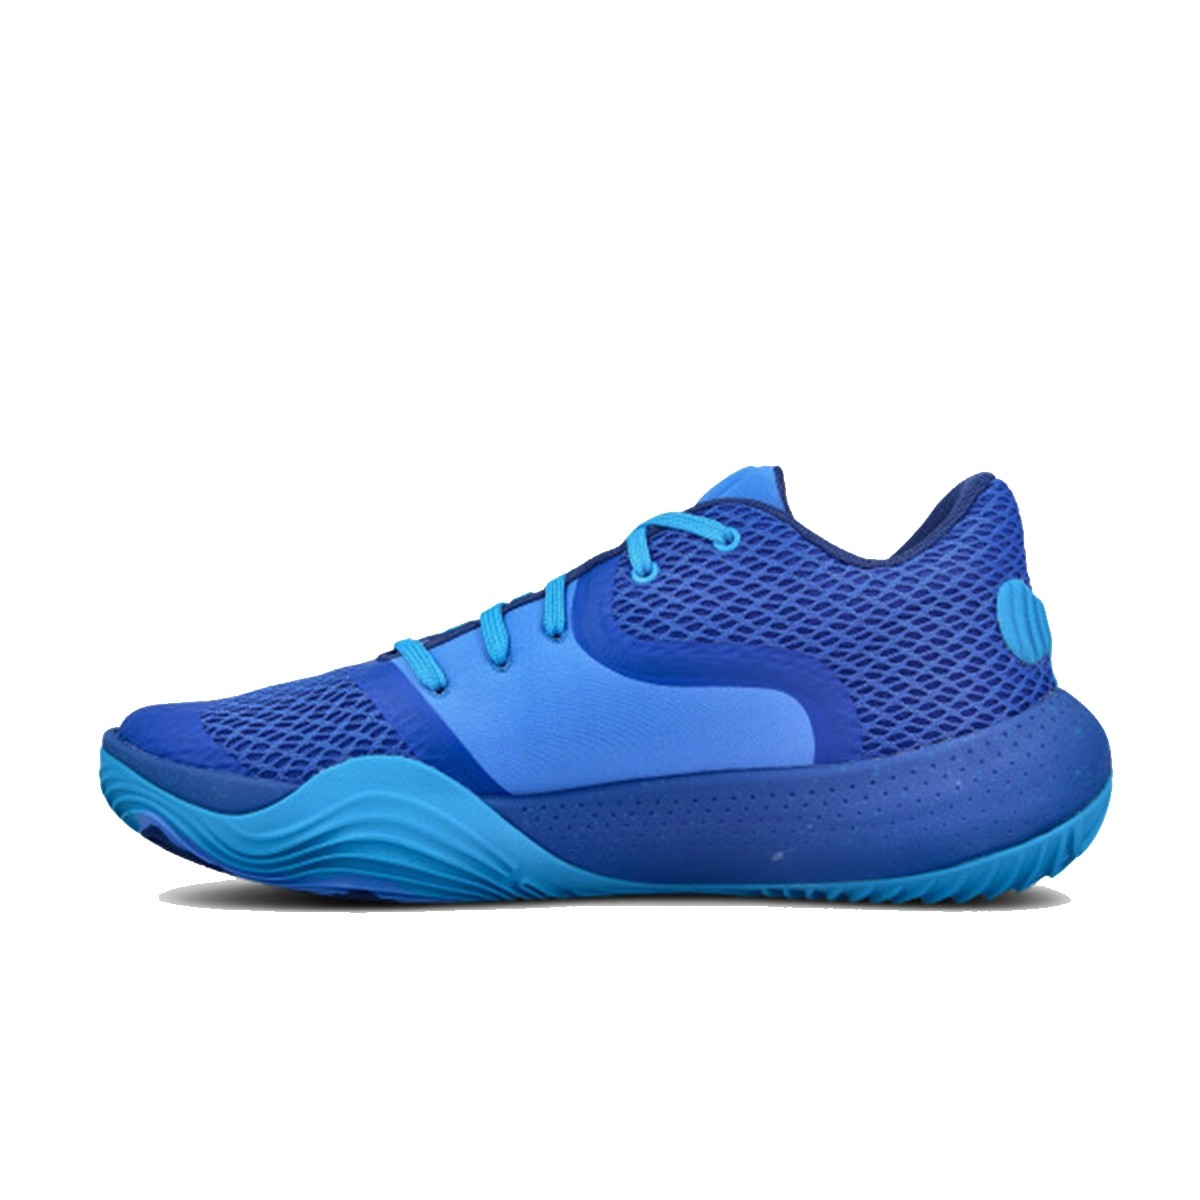 Under Armour Spawn Low II Jr 'Chaos Water'-3022626-403-jr